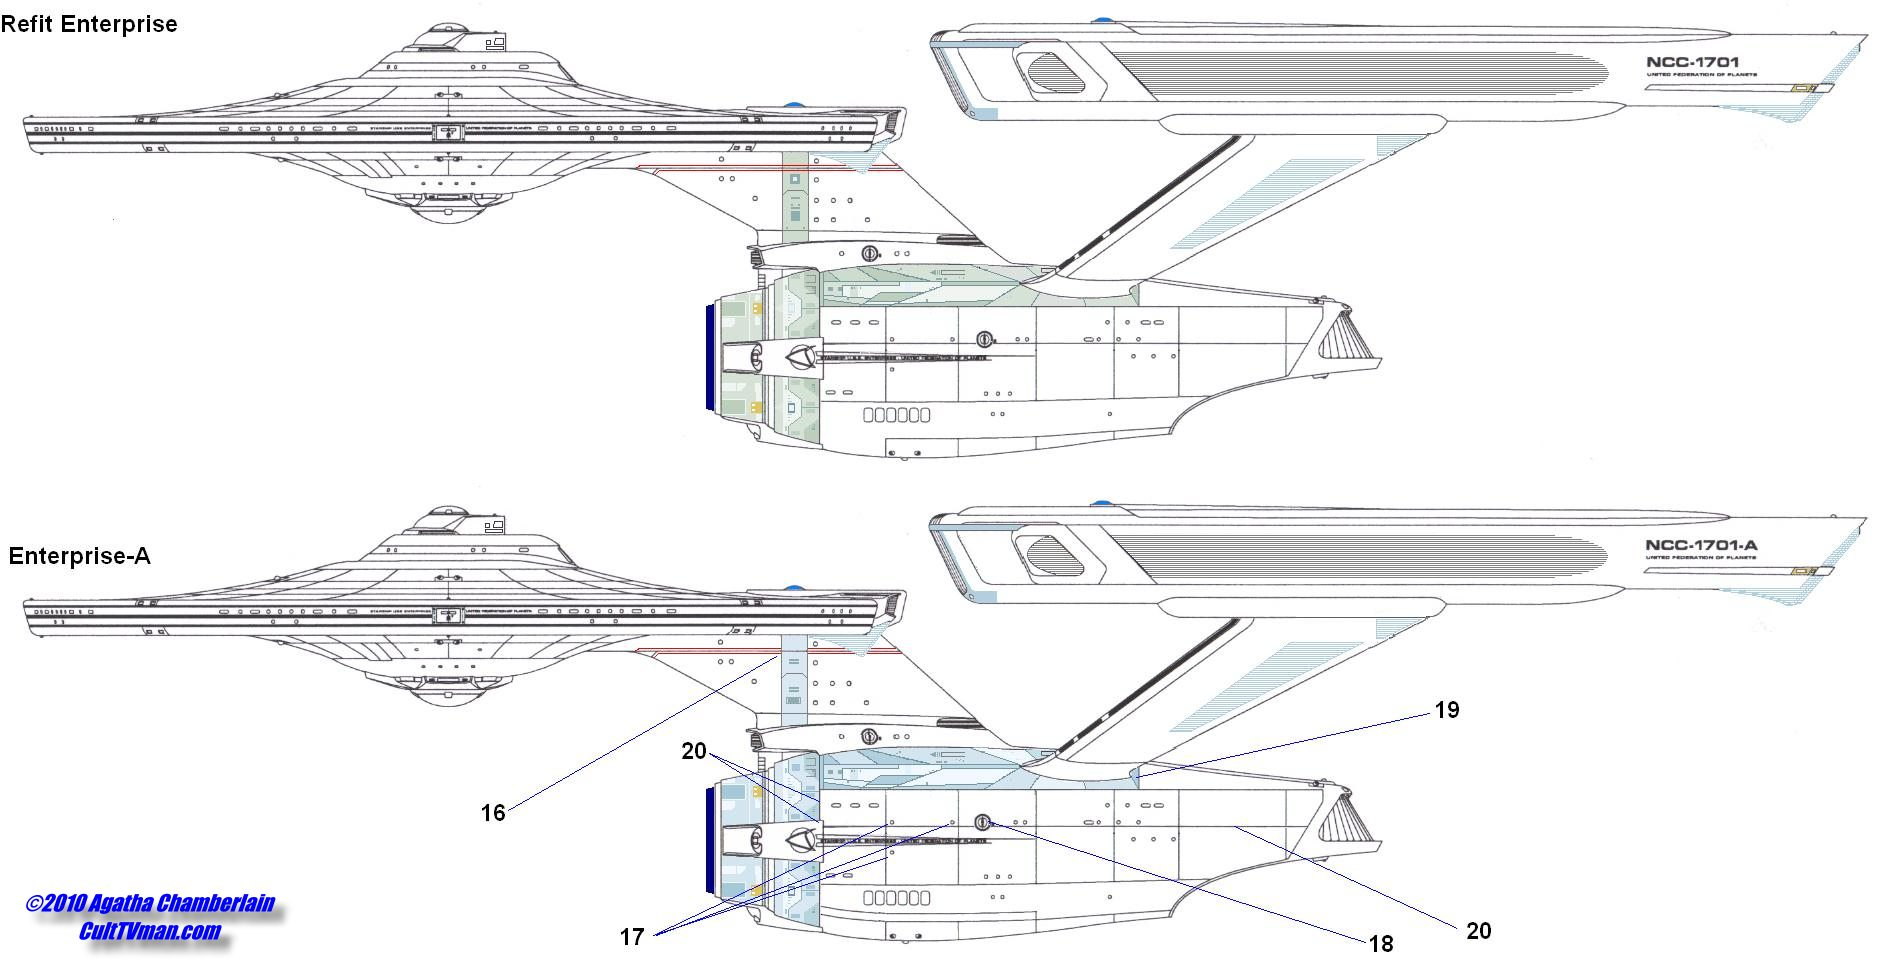 Agatha Chamberlain's Refit Enterprise diagrams